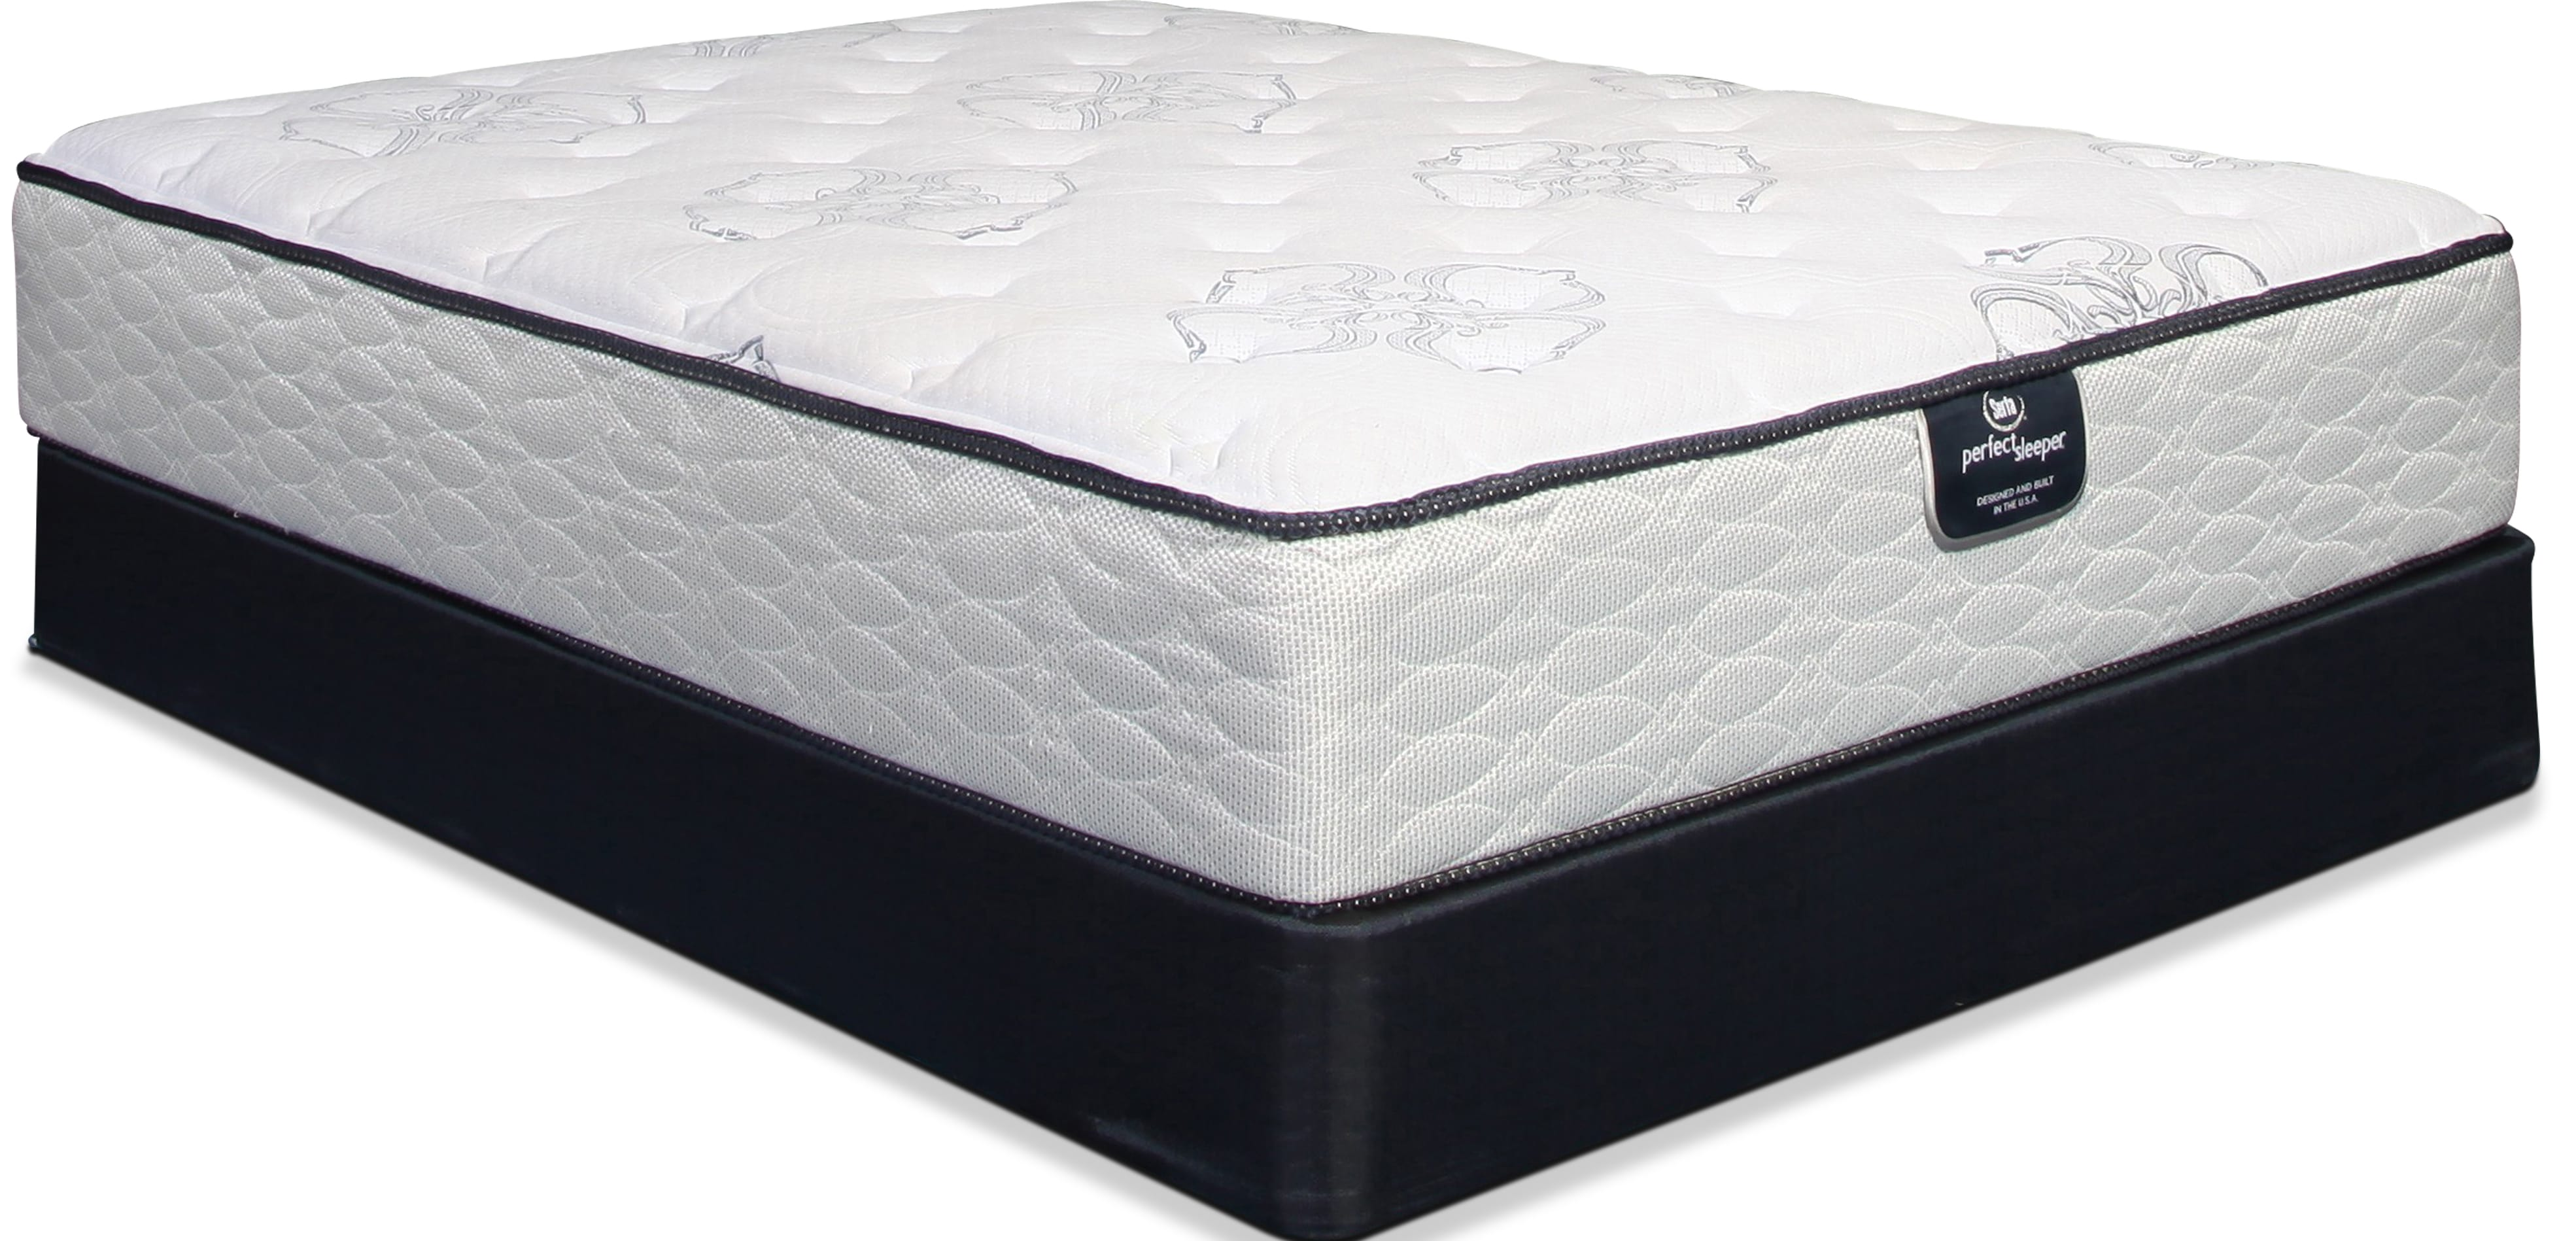 Serta Perfect Sleeper Cushion Firm Full Mattress and Boxspring